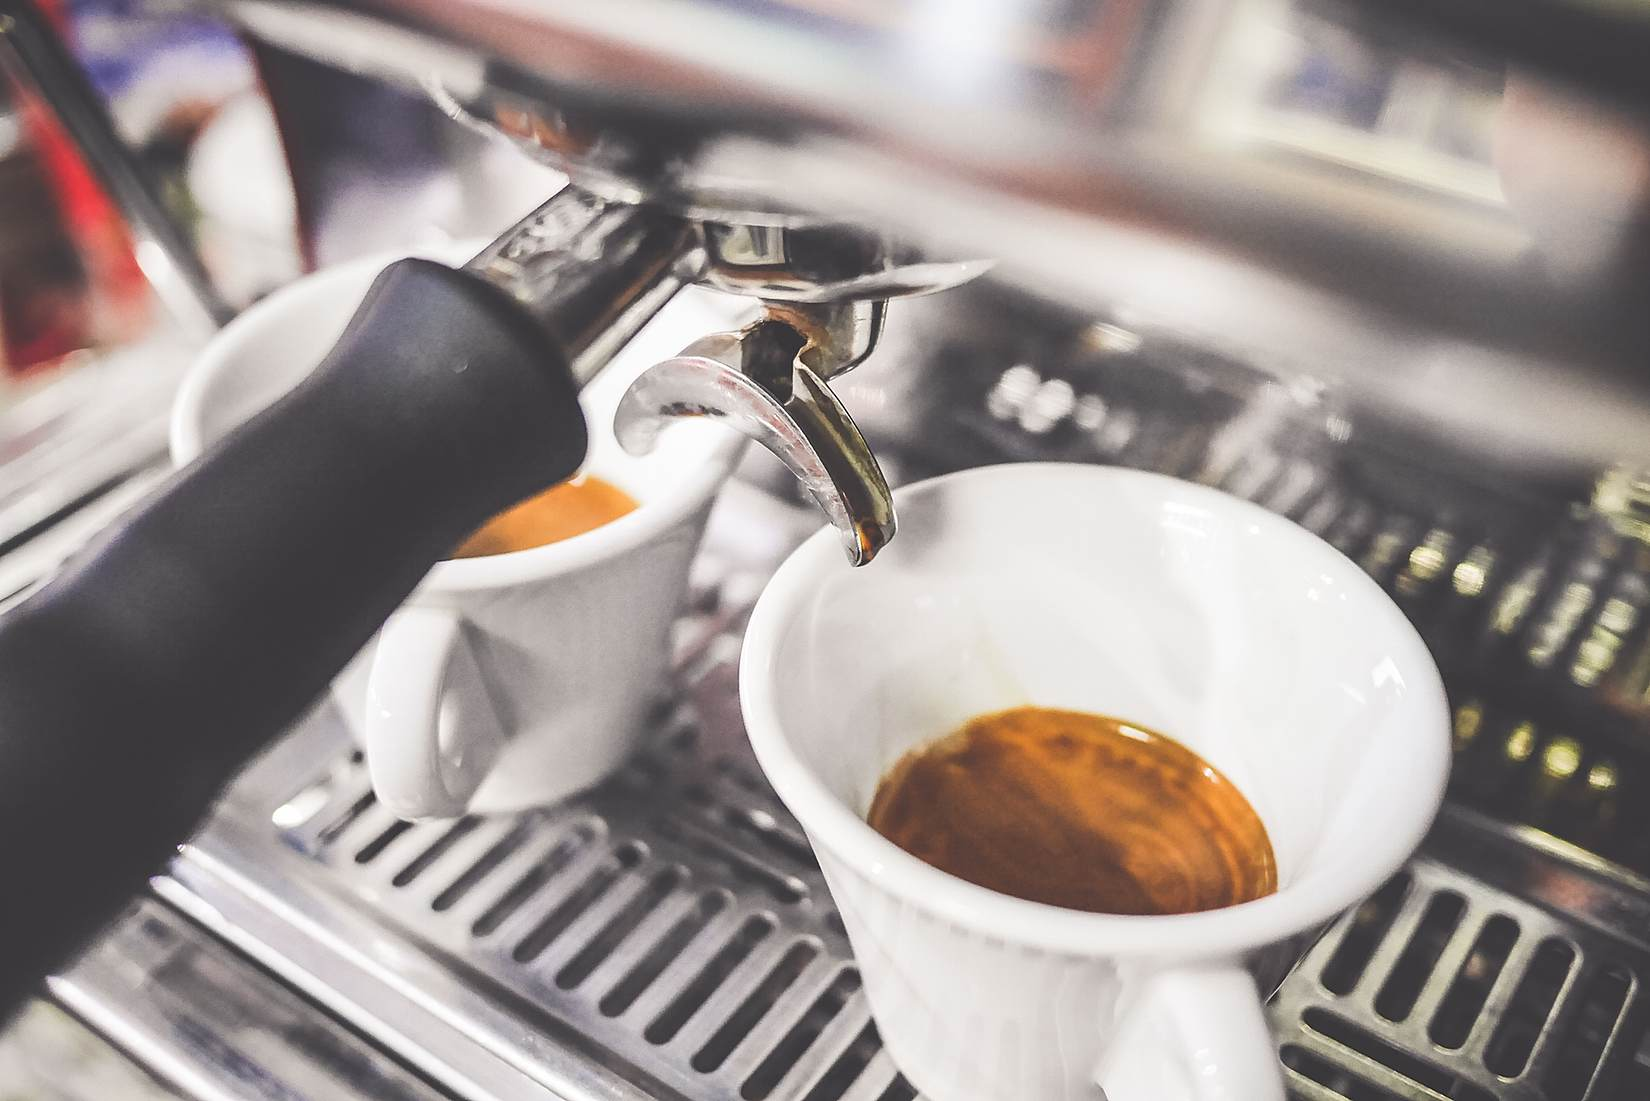 freshly-brewed-coffees-from-coffee-machine